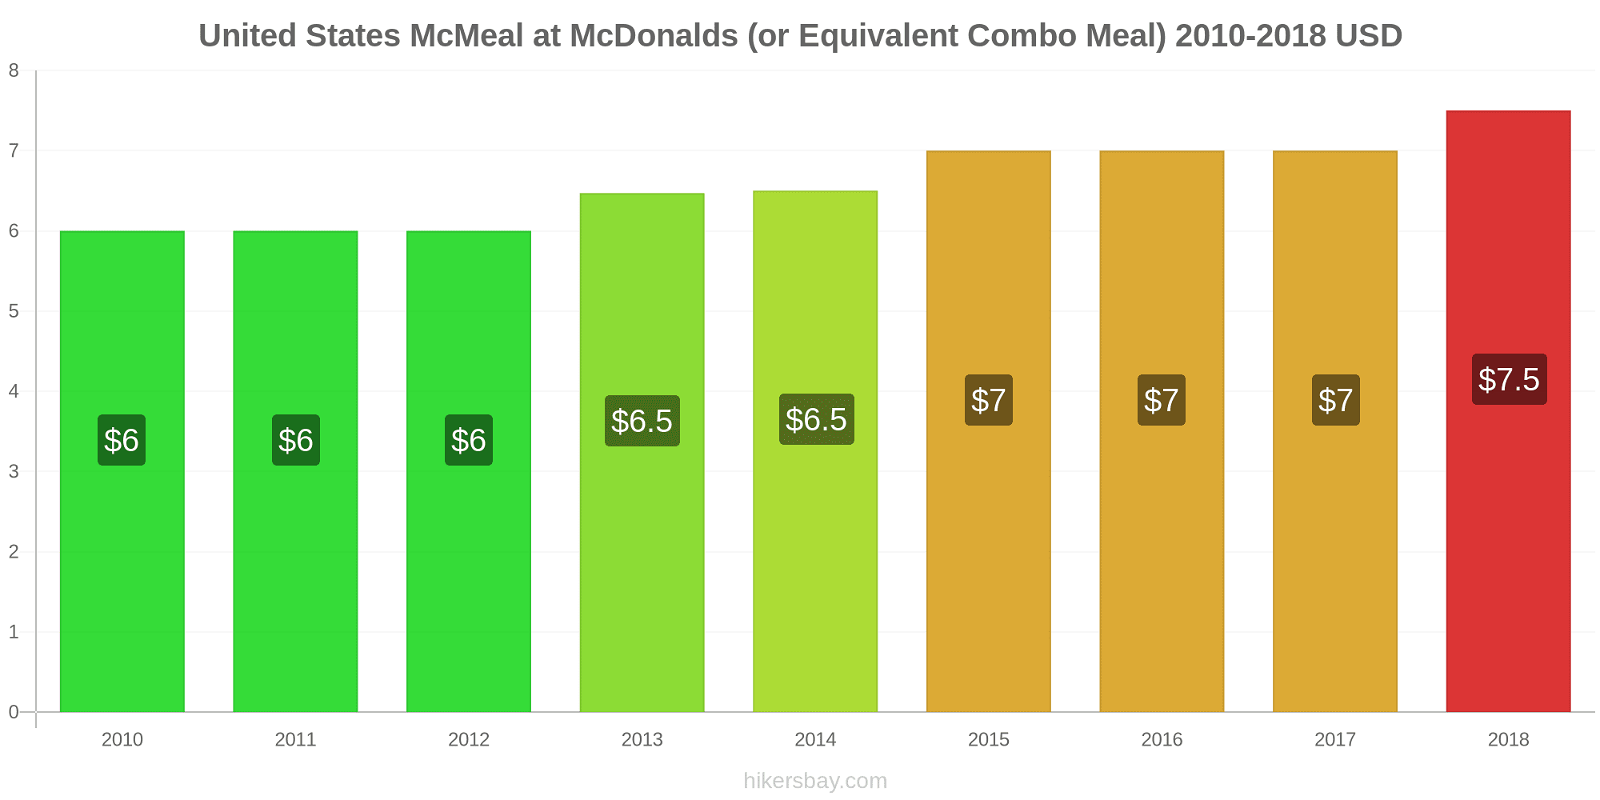 United States price changes McMeal at McDonalds (or Equivalent Combo Meal) hikersbay.com